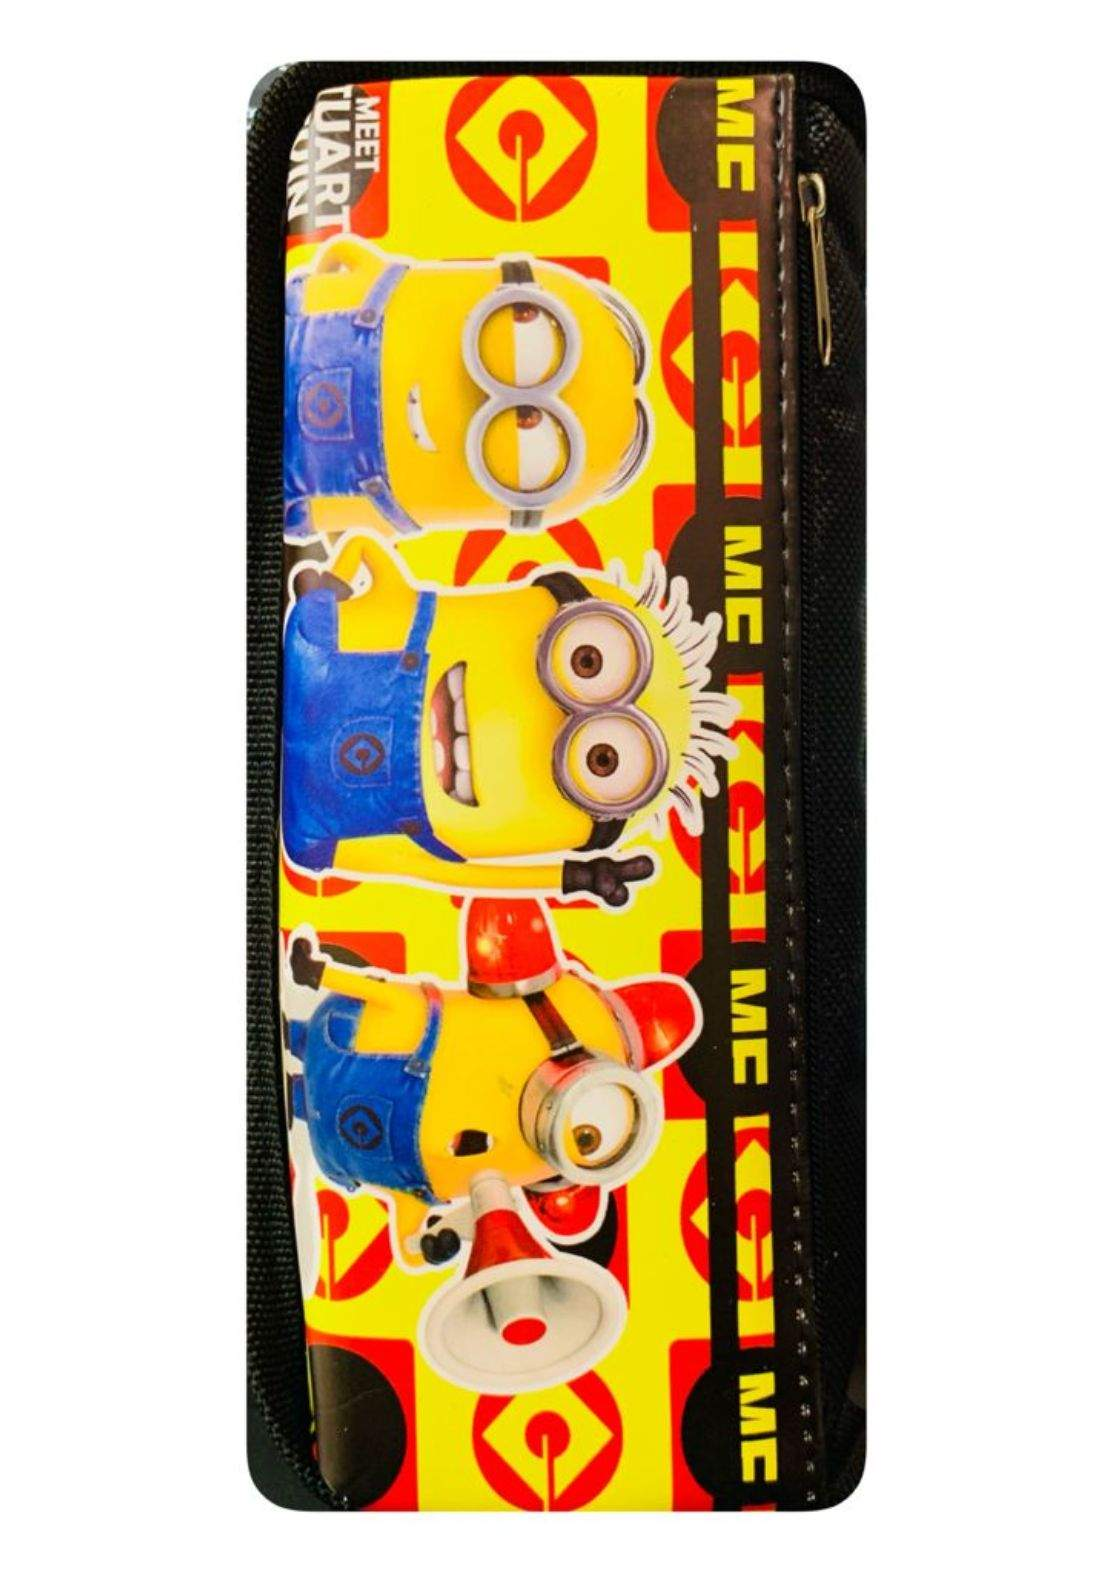 Pen and Pencils Case محفظة اقلام